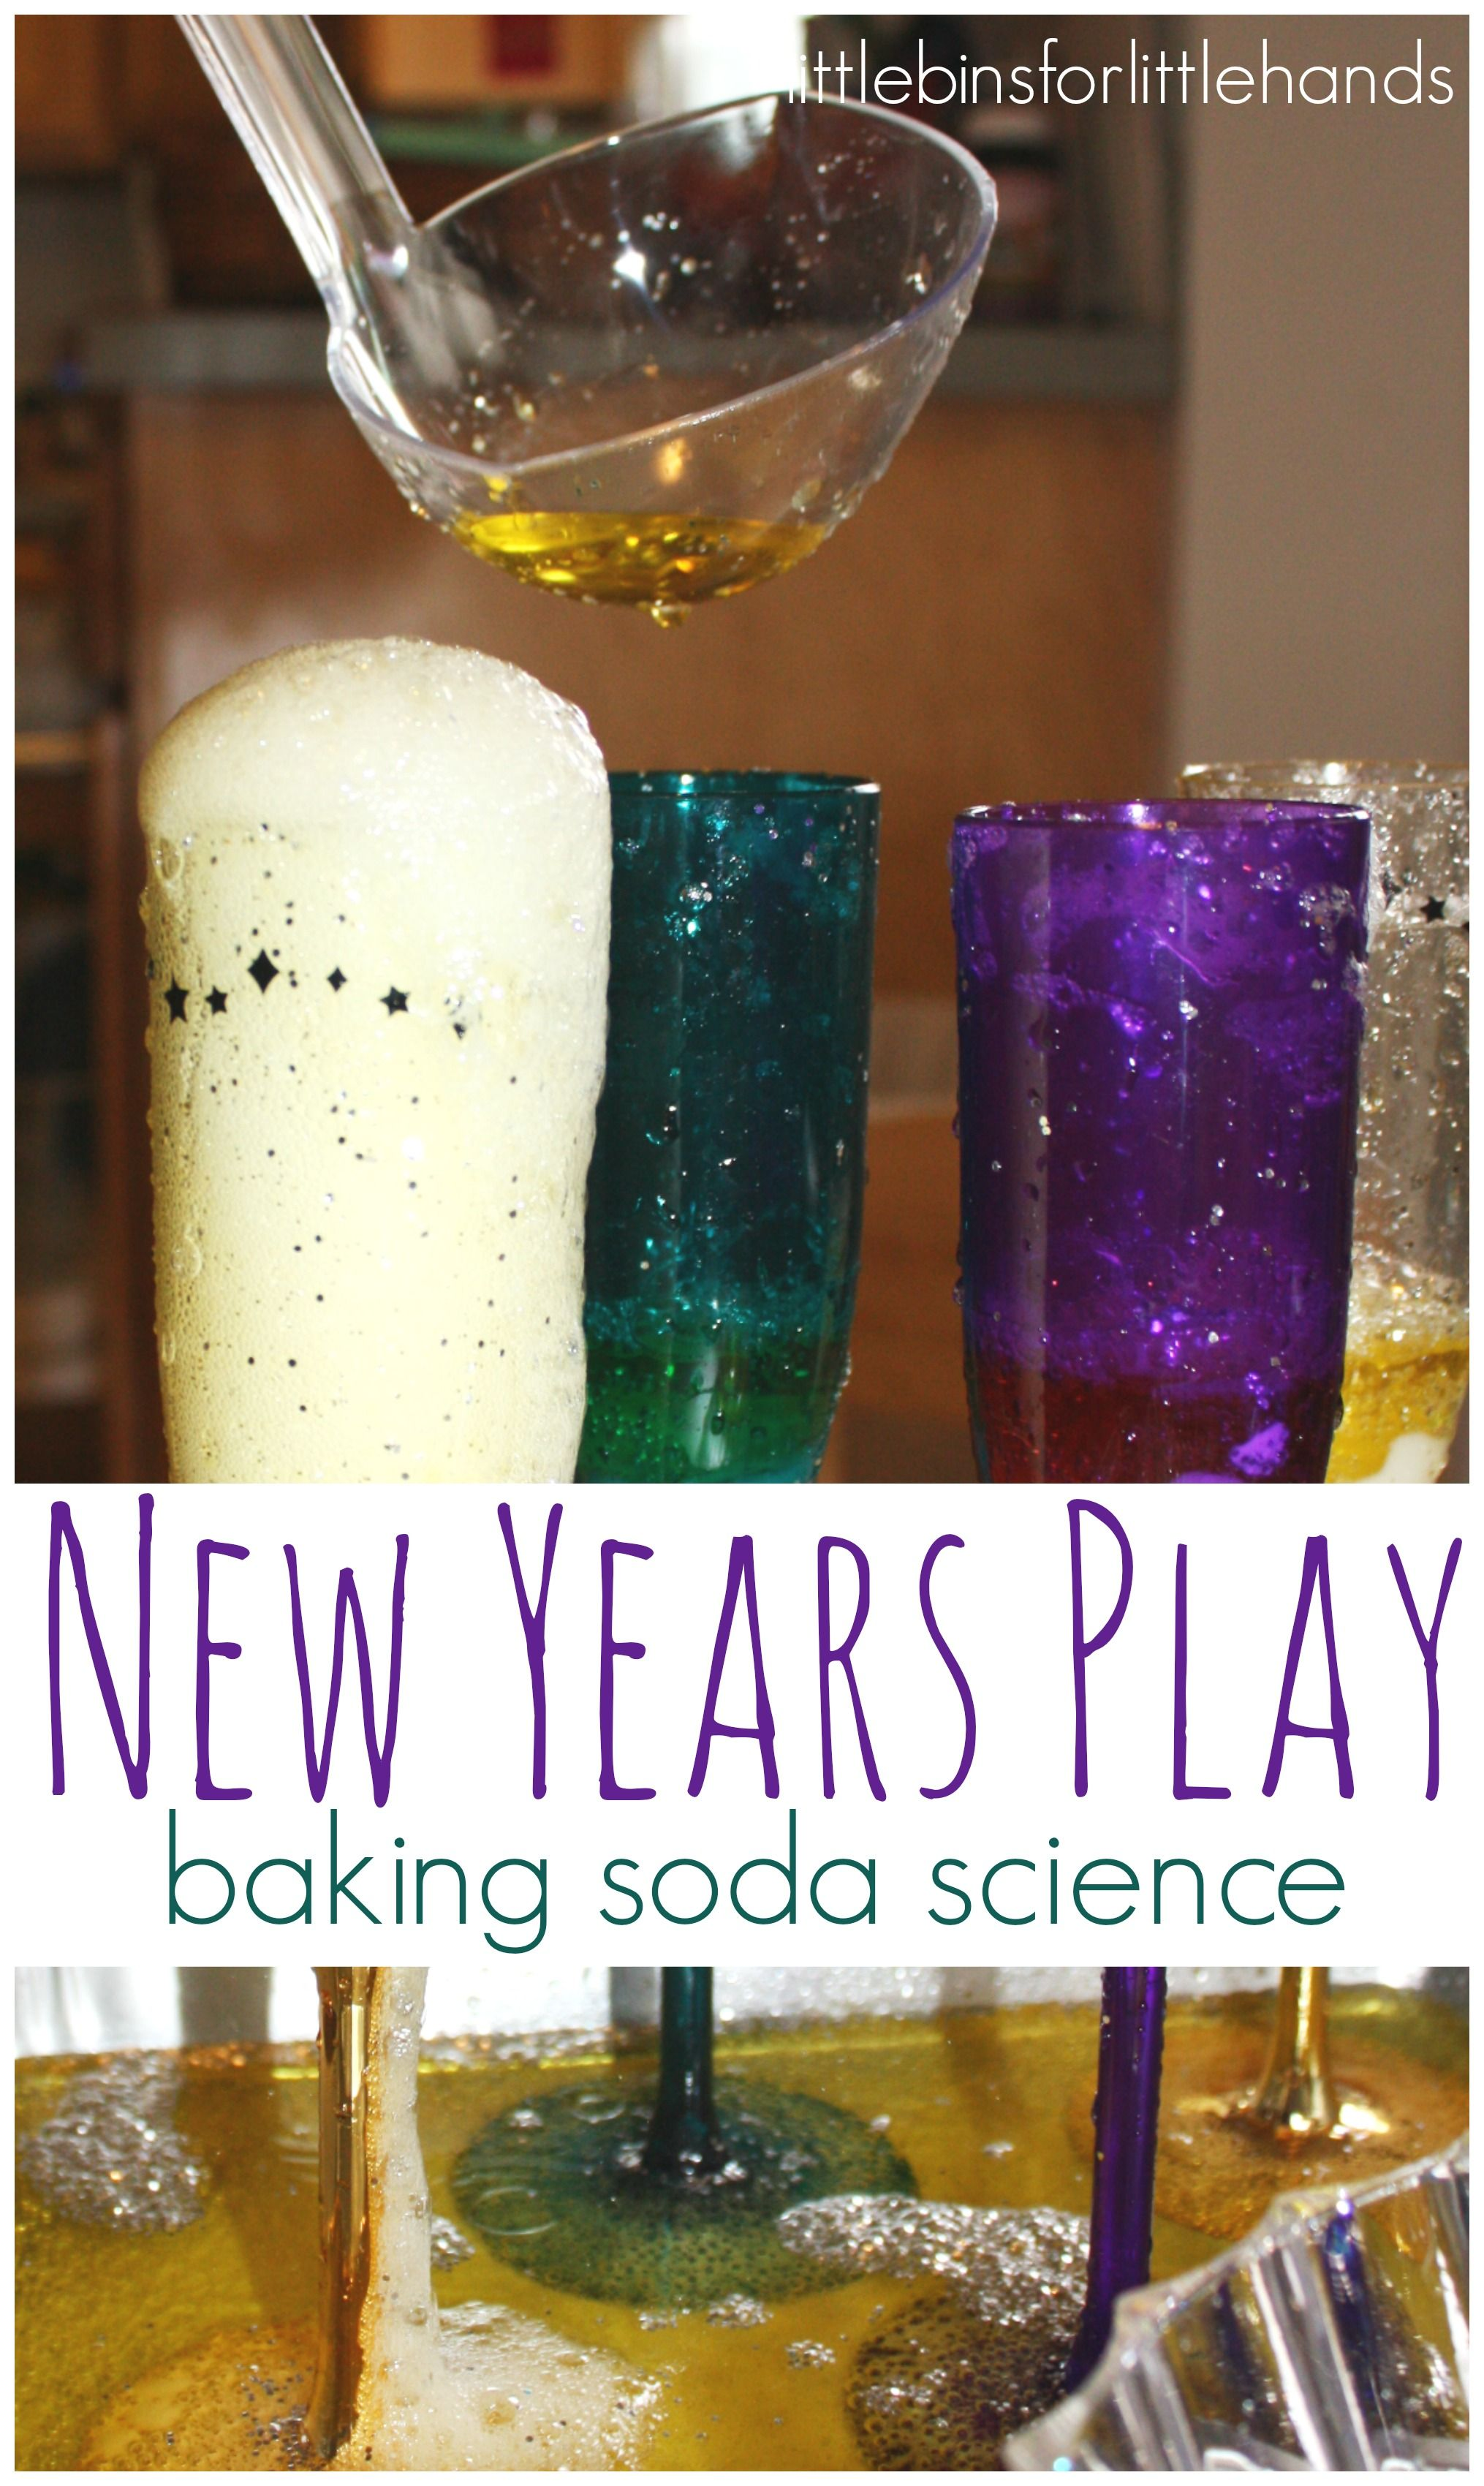 New Years Activity And New Years Eve Fizzy Baking Soda